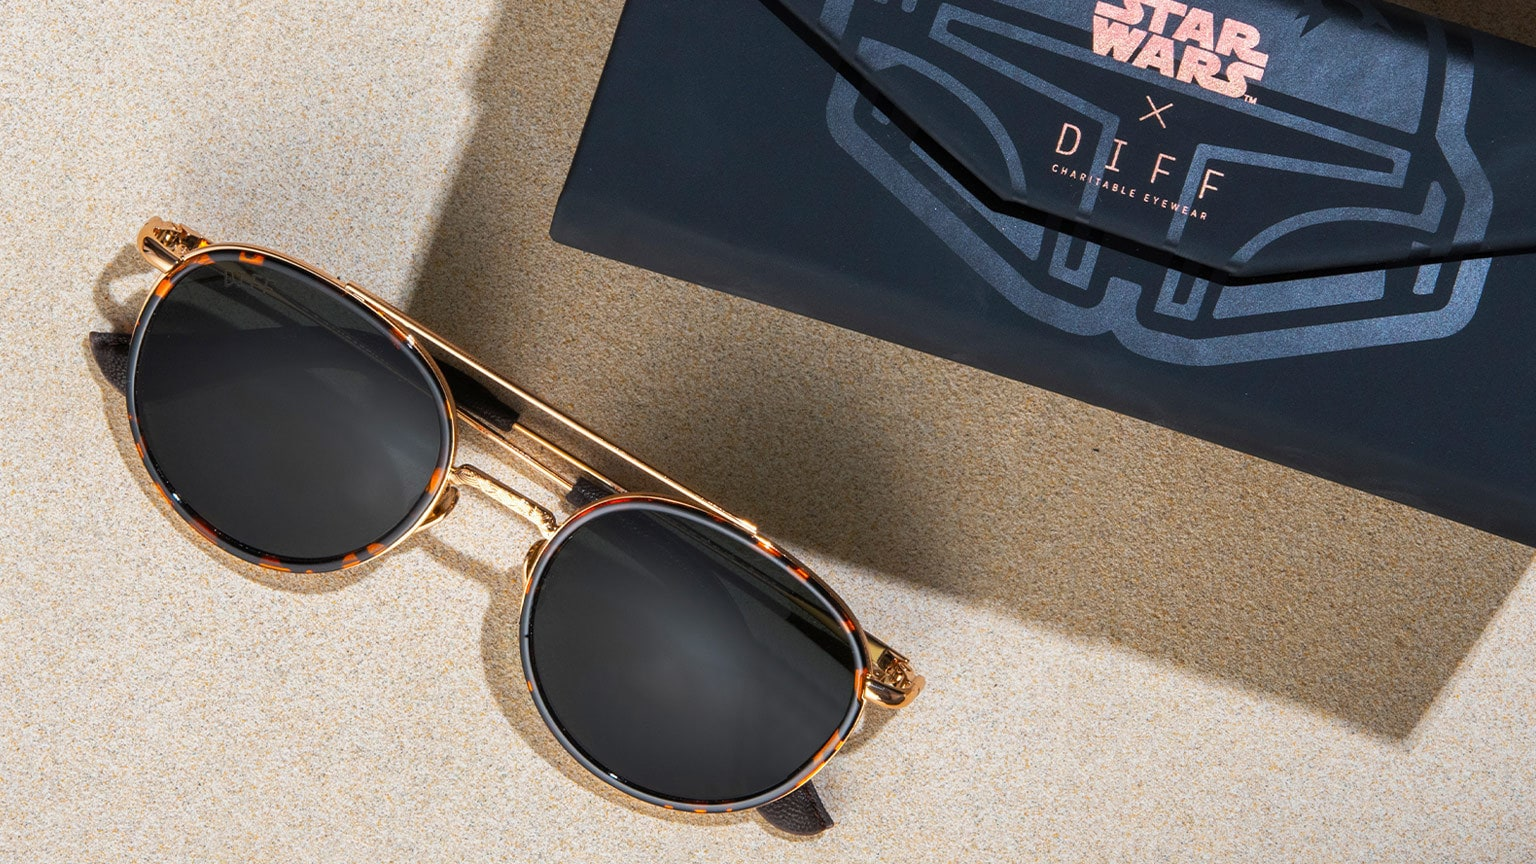 Star Wars | DIFF Launches Eyewear Celebrating an Empire